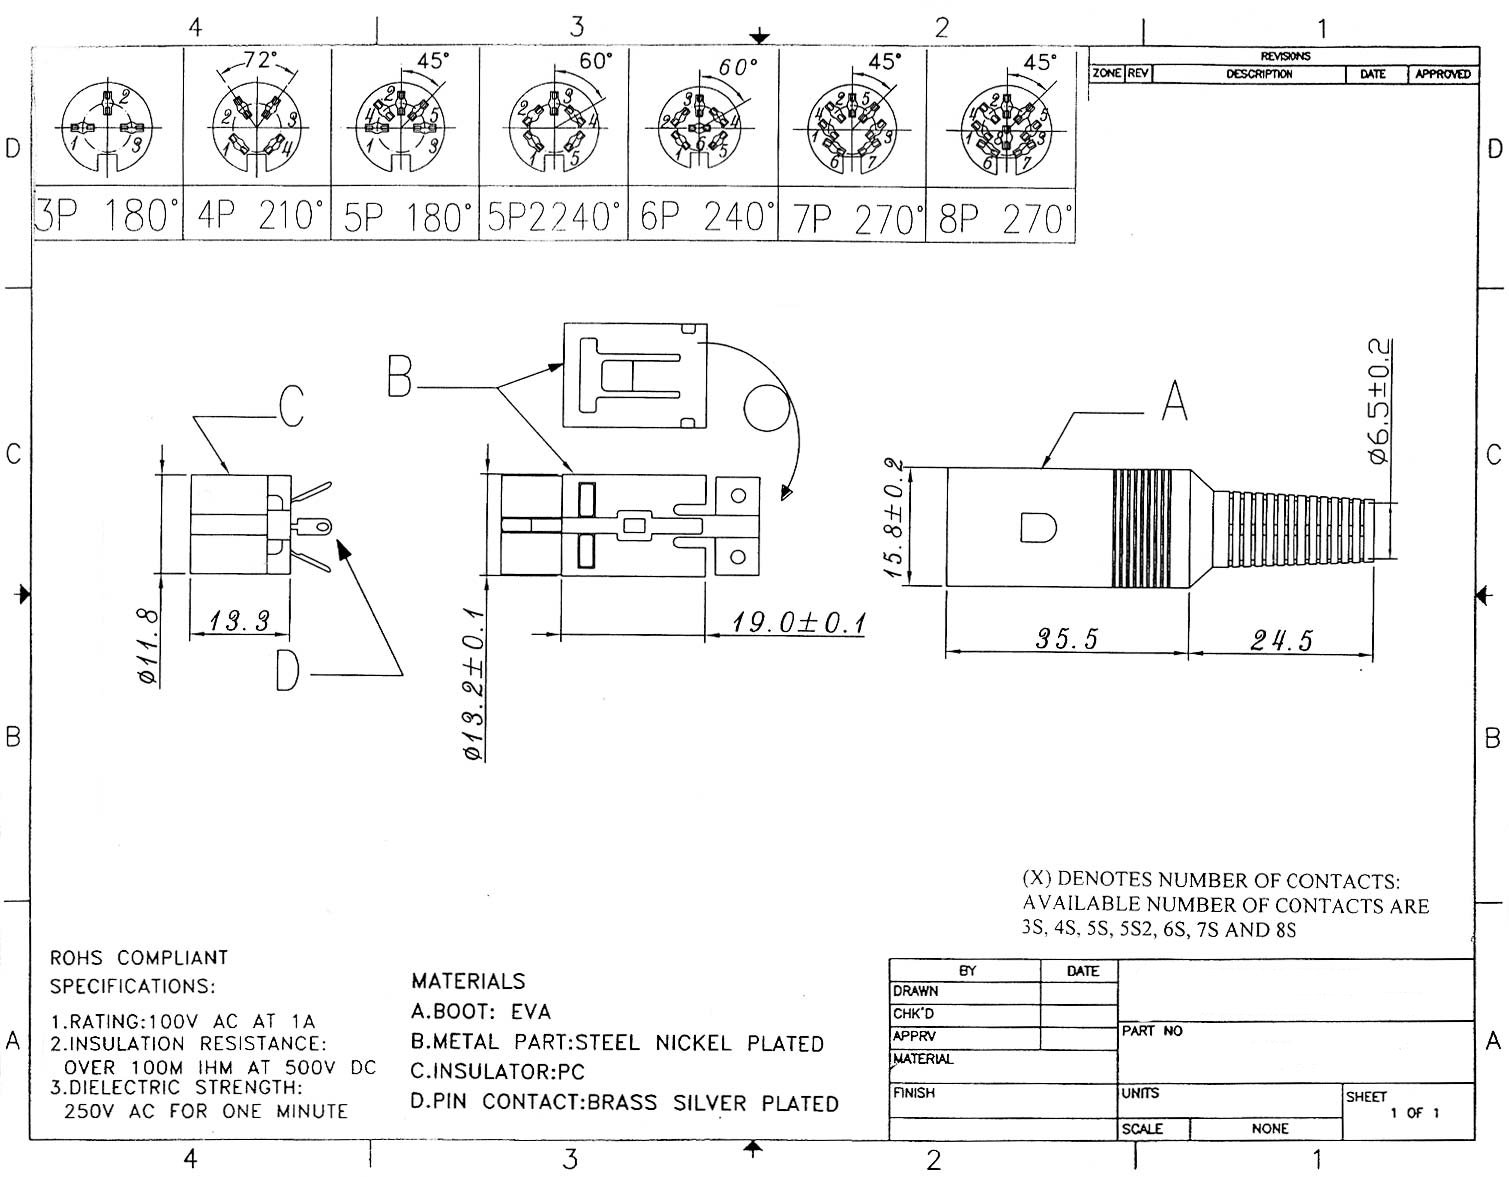 4 Pin Din Female Solder Connector Plastic Rj22 Wiring Diagram Click Here To Download The Spec Sheet